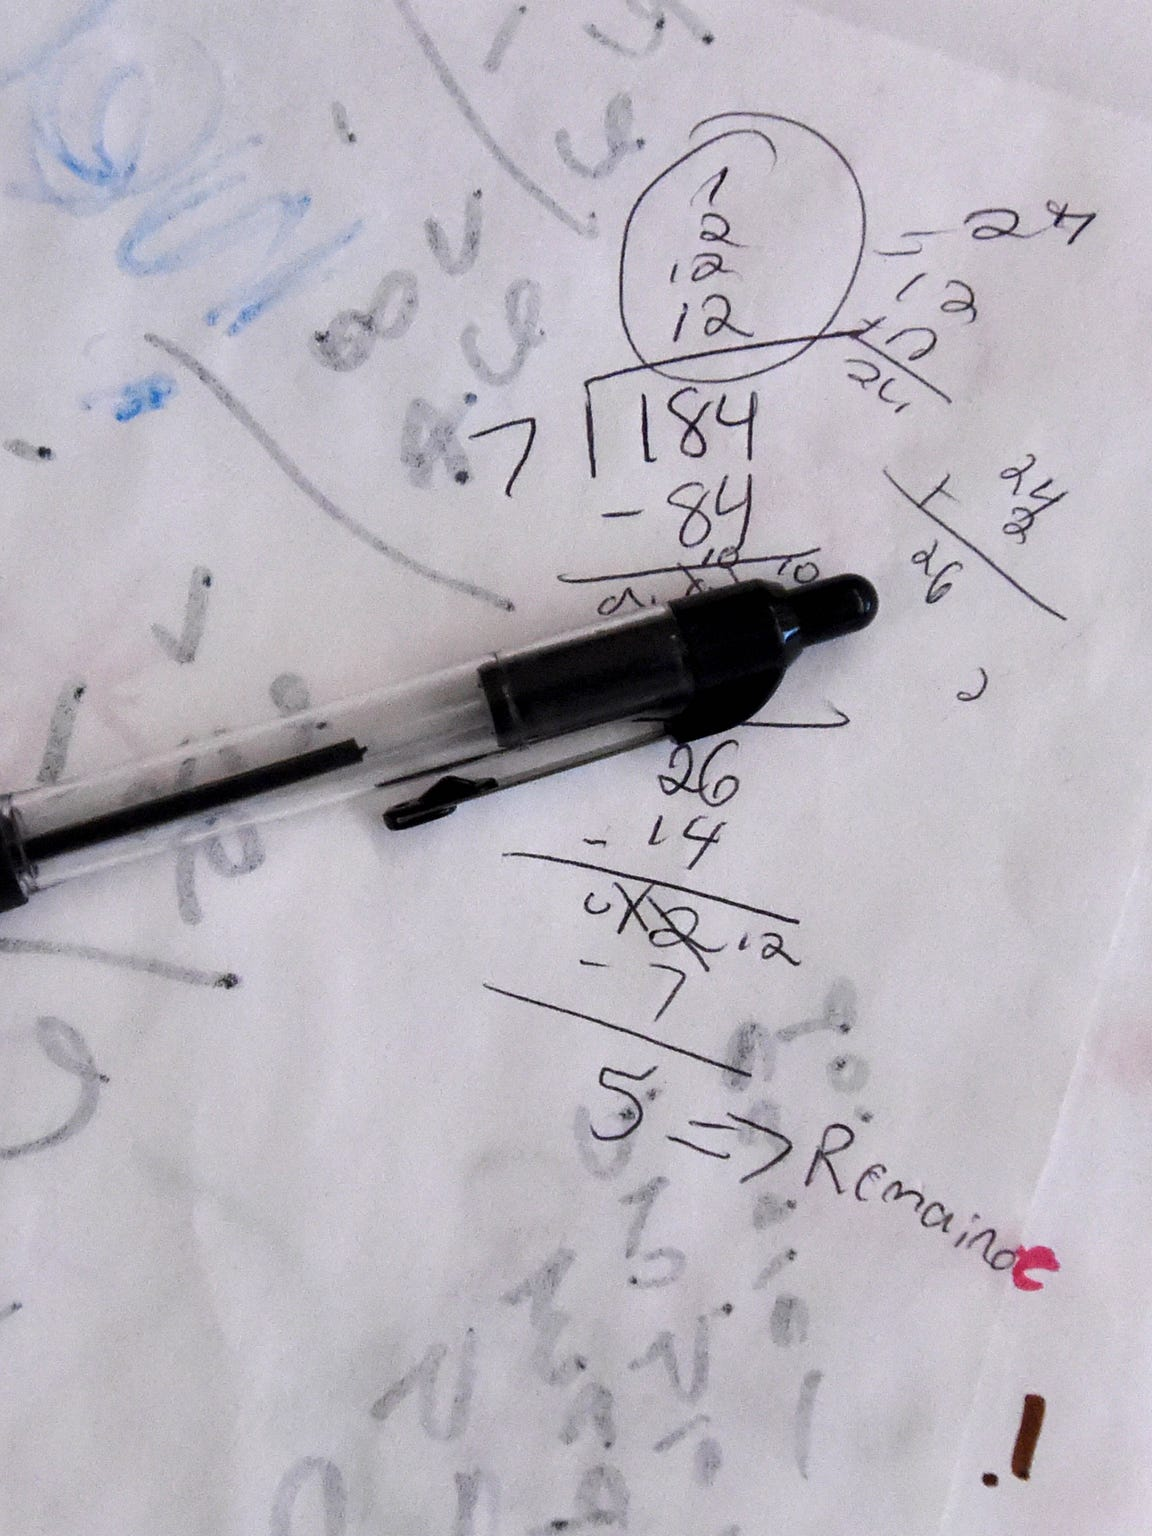 A pen rests on top of a paper marked numbers and equations